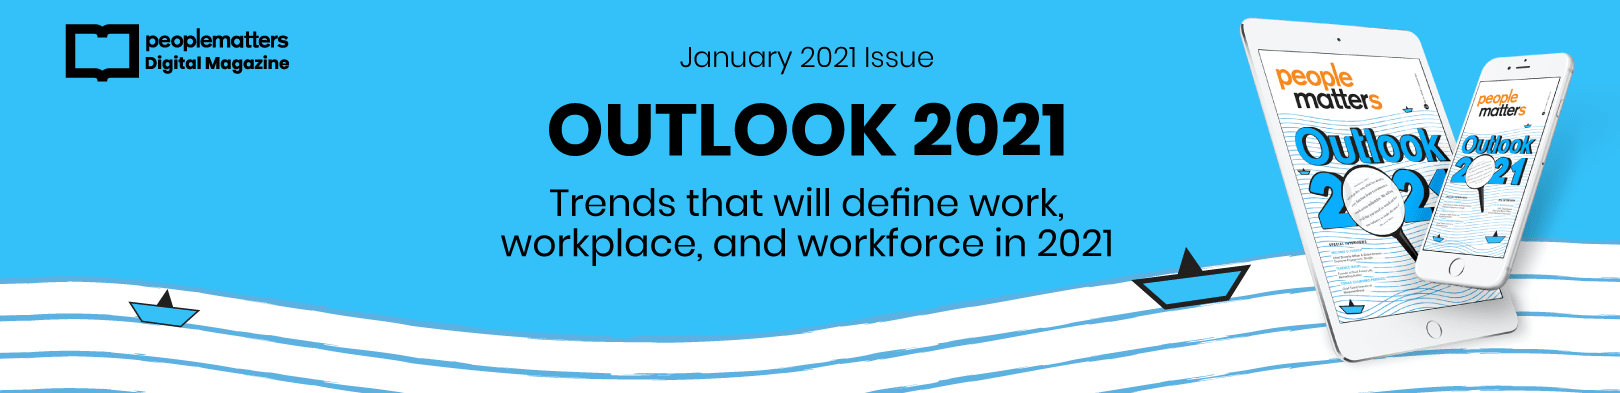 People Matters January 2021 Issue: Outlook 2021